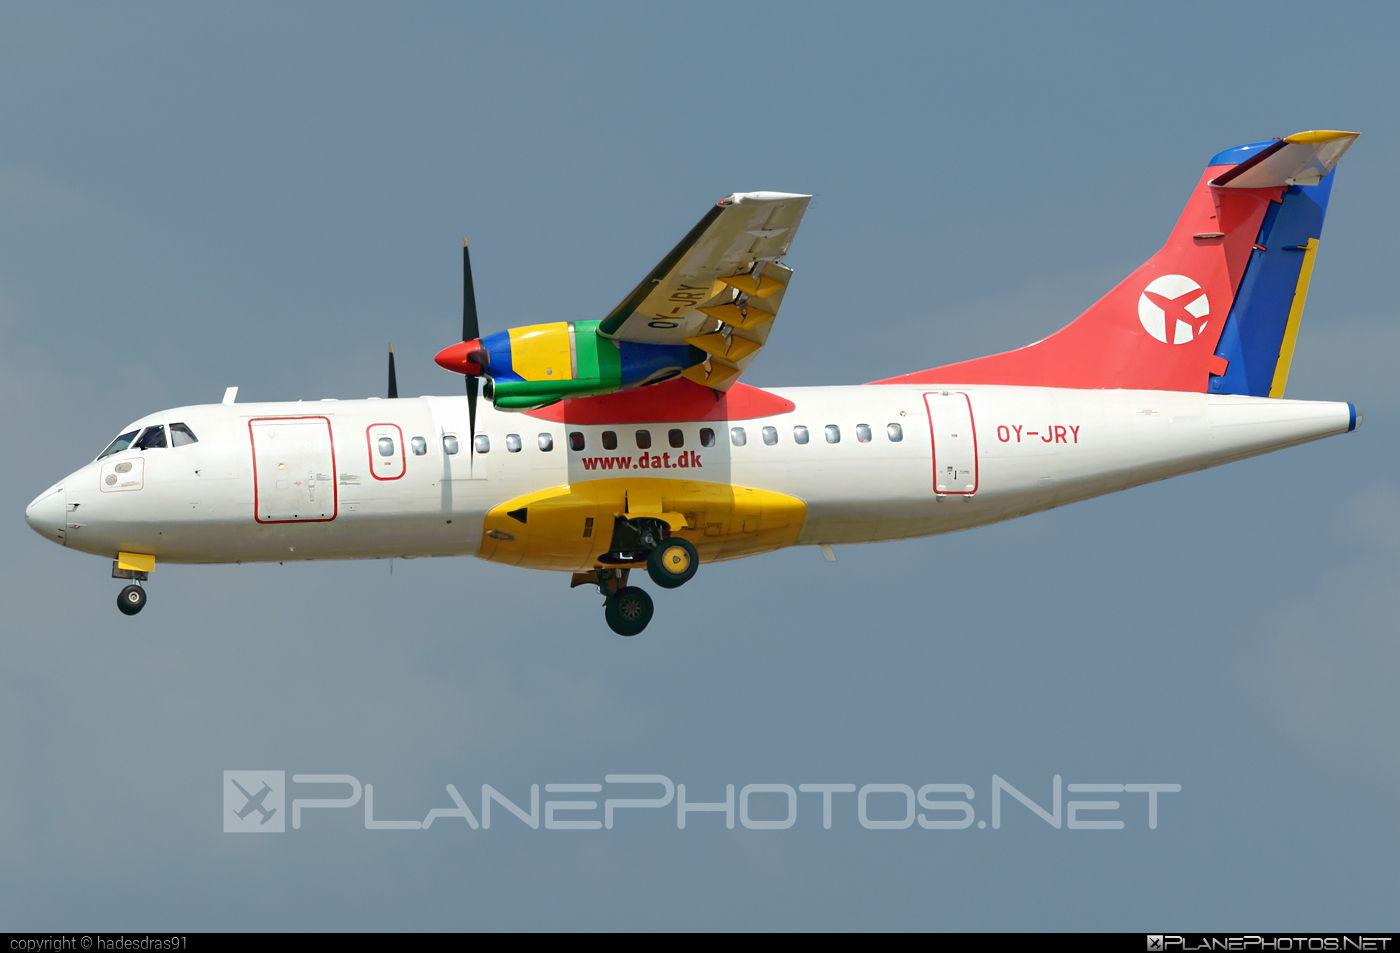 ATR 42-300 - OY-JRY operated by Danish Air Transport (DAT) #atr #atr42 #atr42300